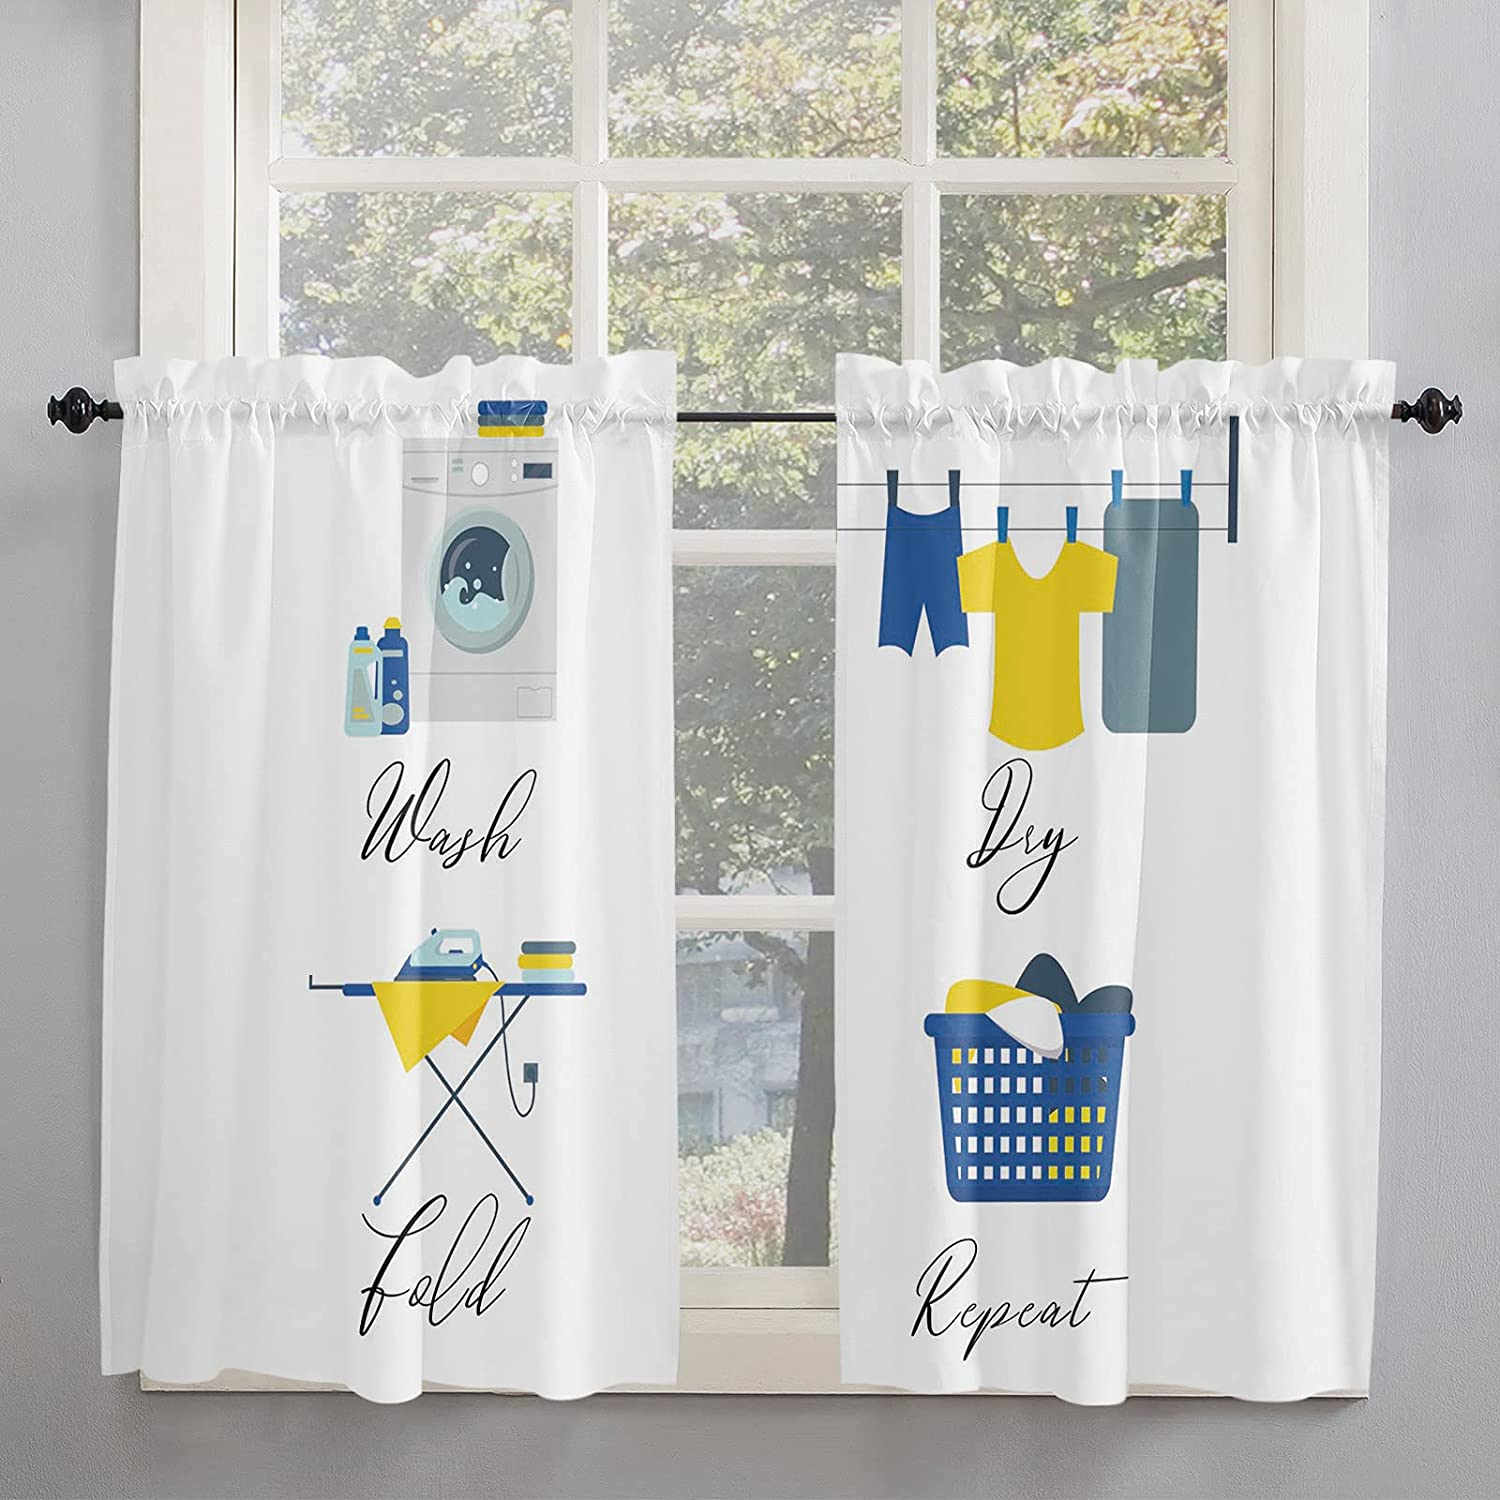 Laundry Room Puzzle Kitchen Curtains Windows Inch Tulsa Mall Length 54 35% OFF for